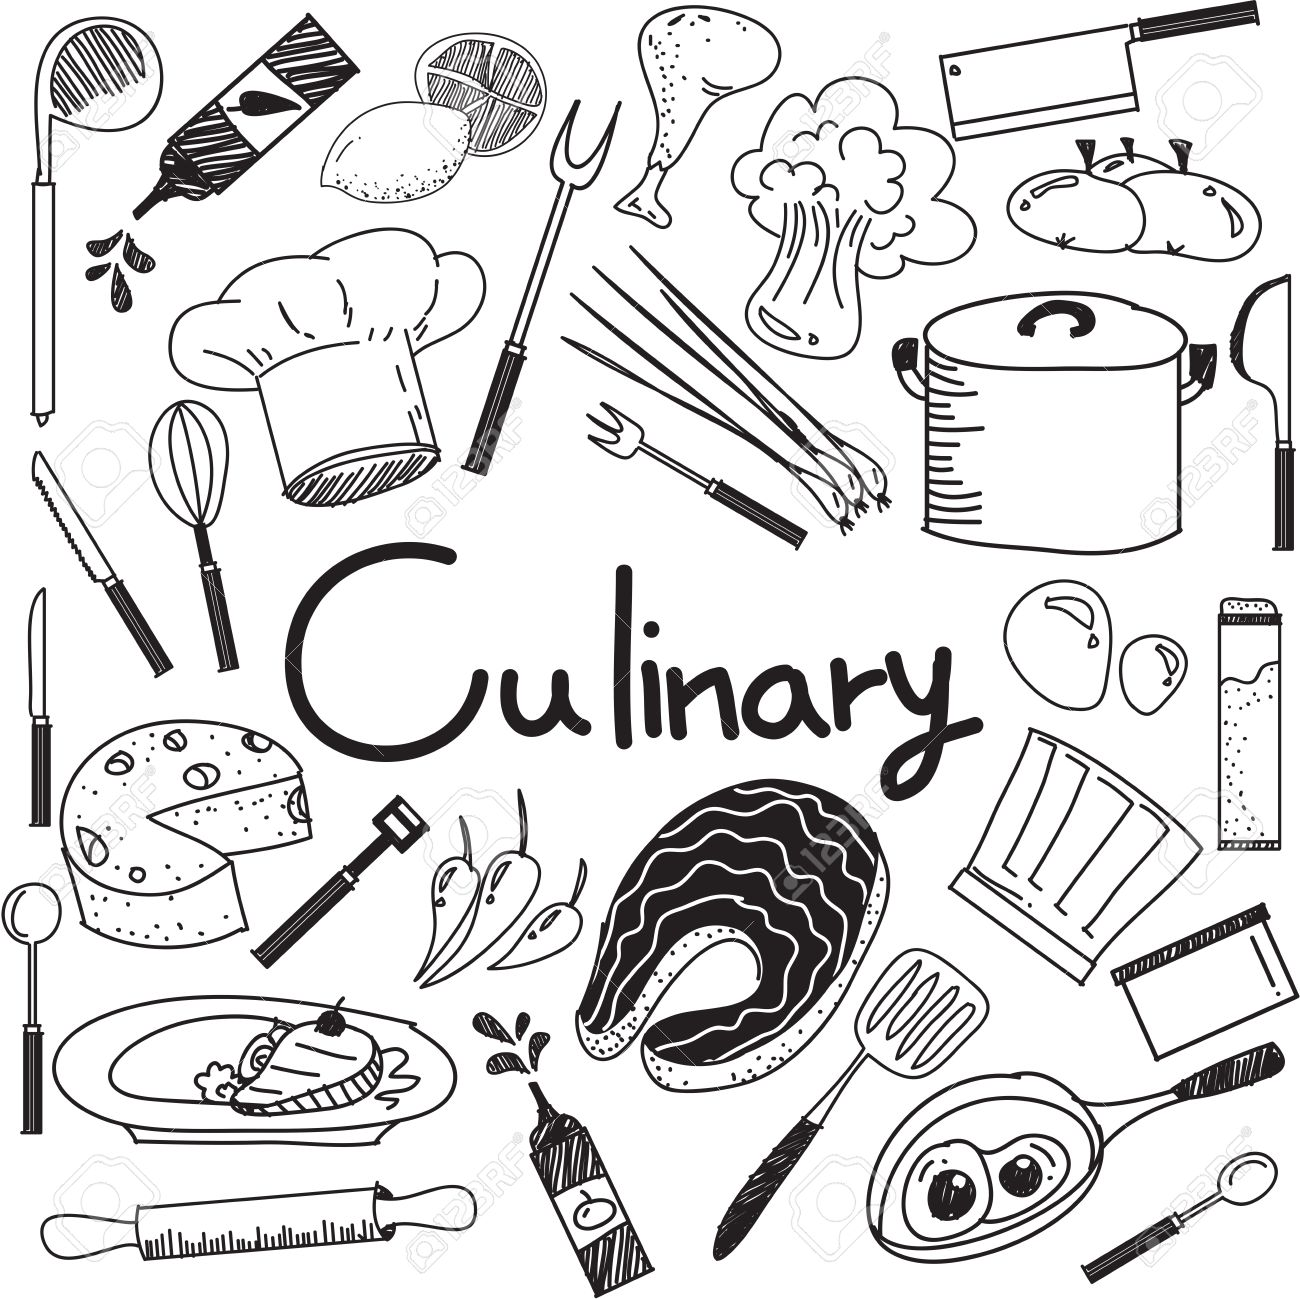 Kitchen tools drawing - Culinary And Cooking Handwriting Doodle Of Food Ingredients And Kitchen Tools Icon In White Isolated Background